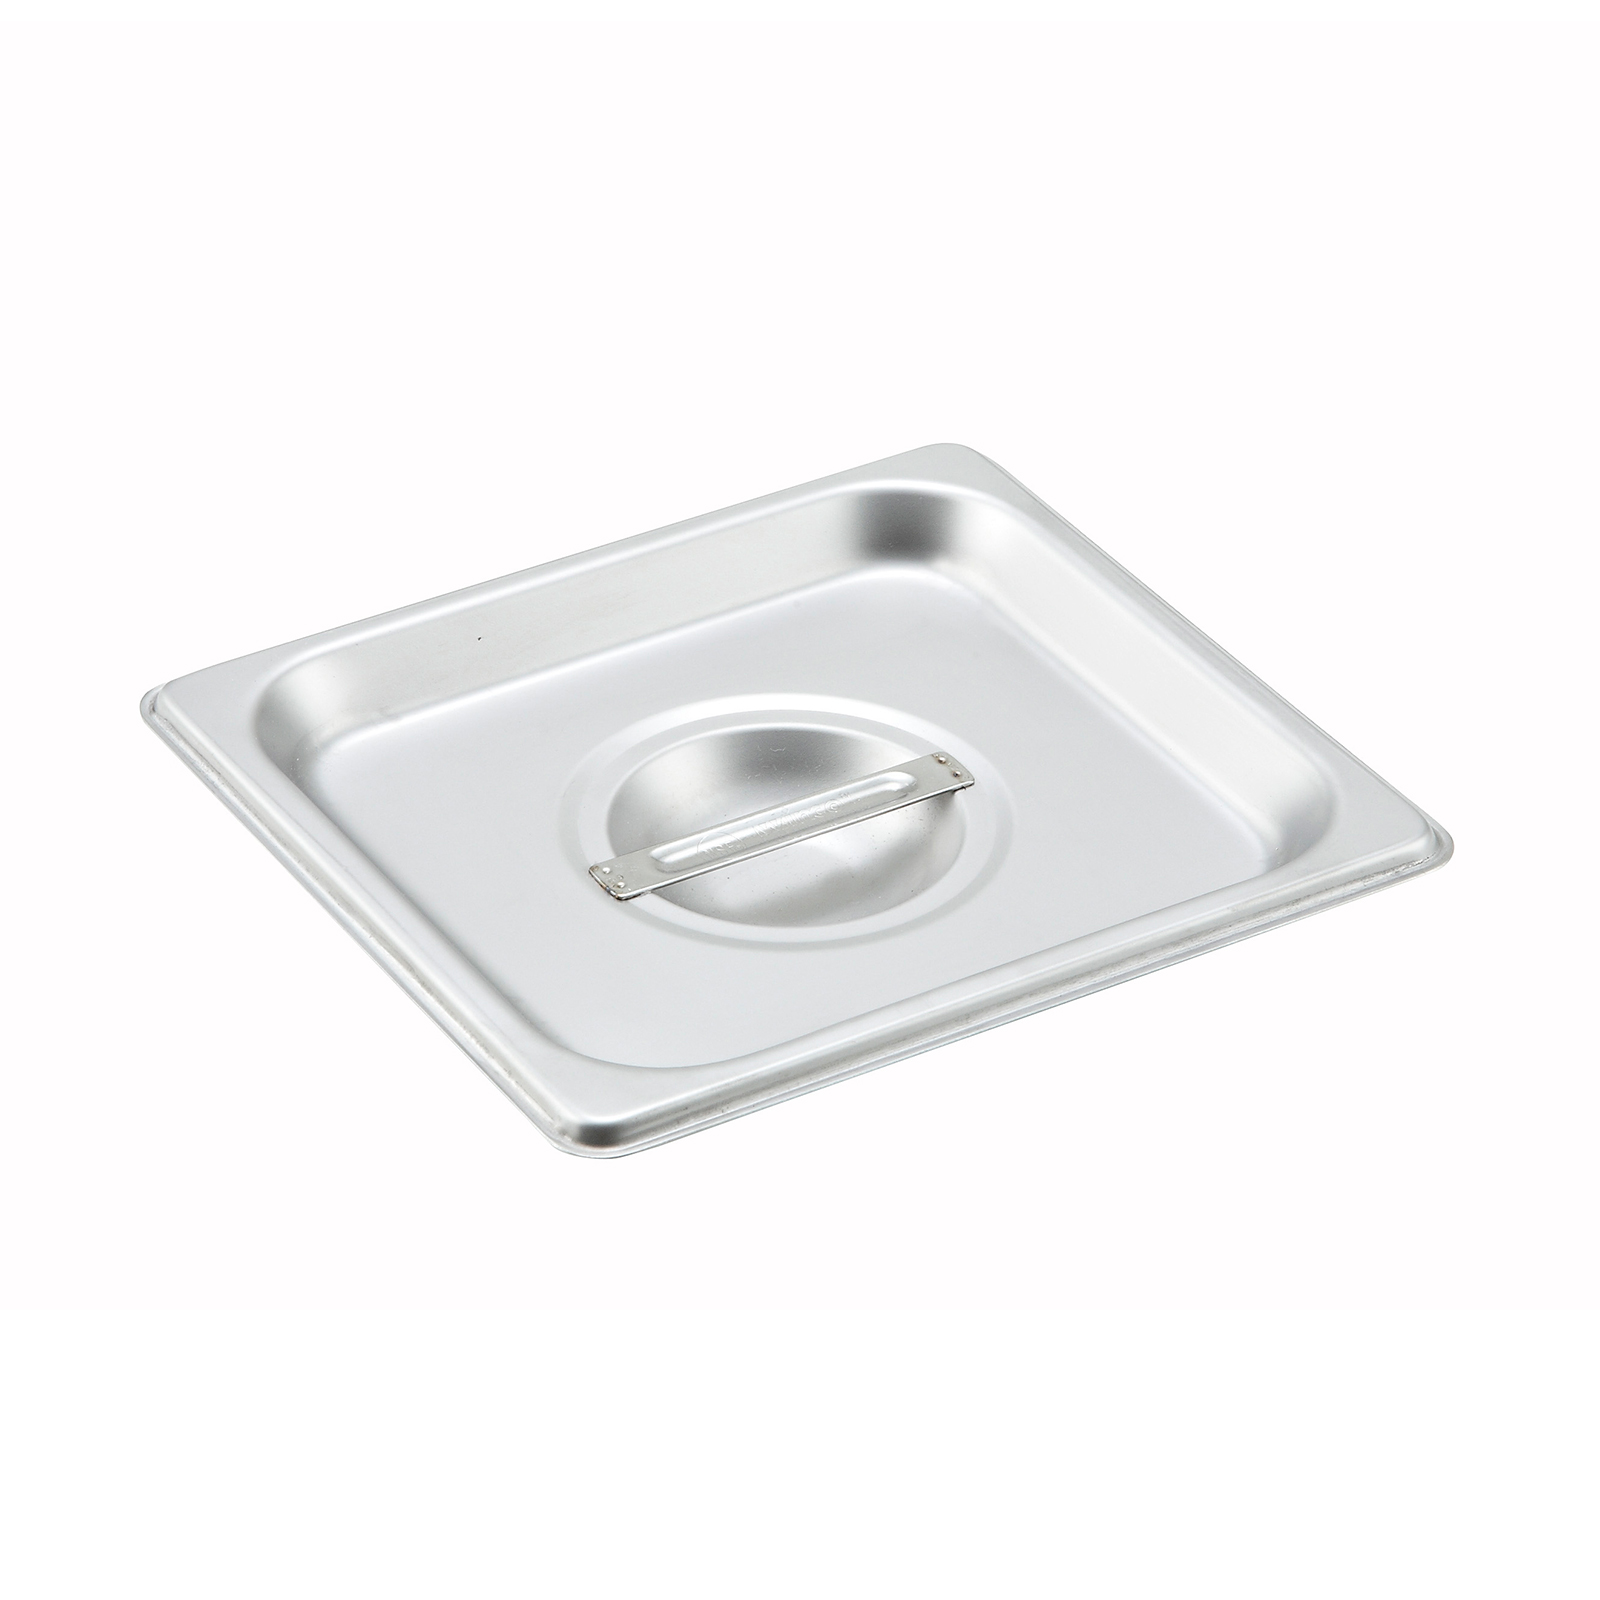 2400-1281 Winco SPSCS steam table pan cover, stainless steel